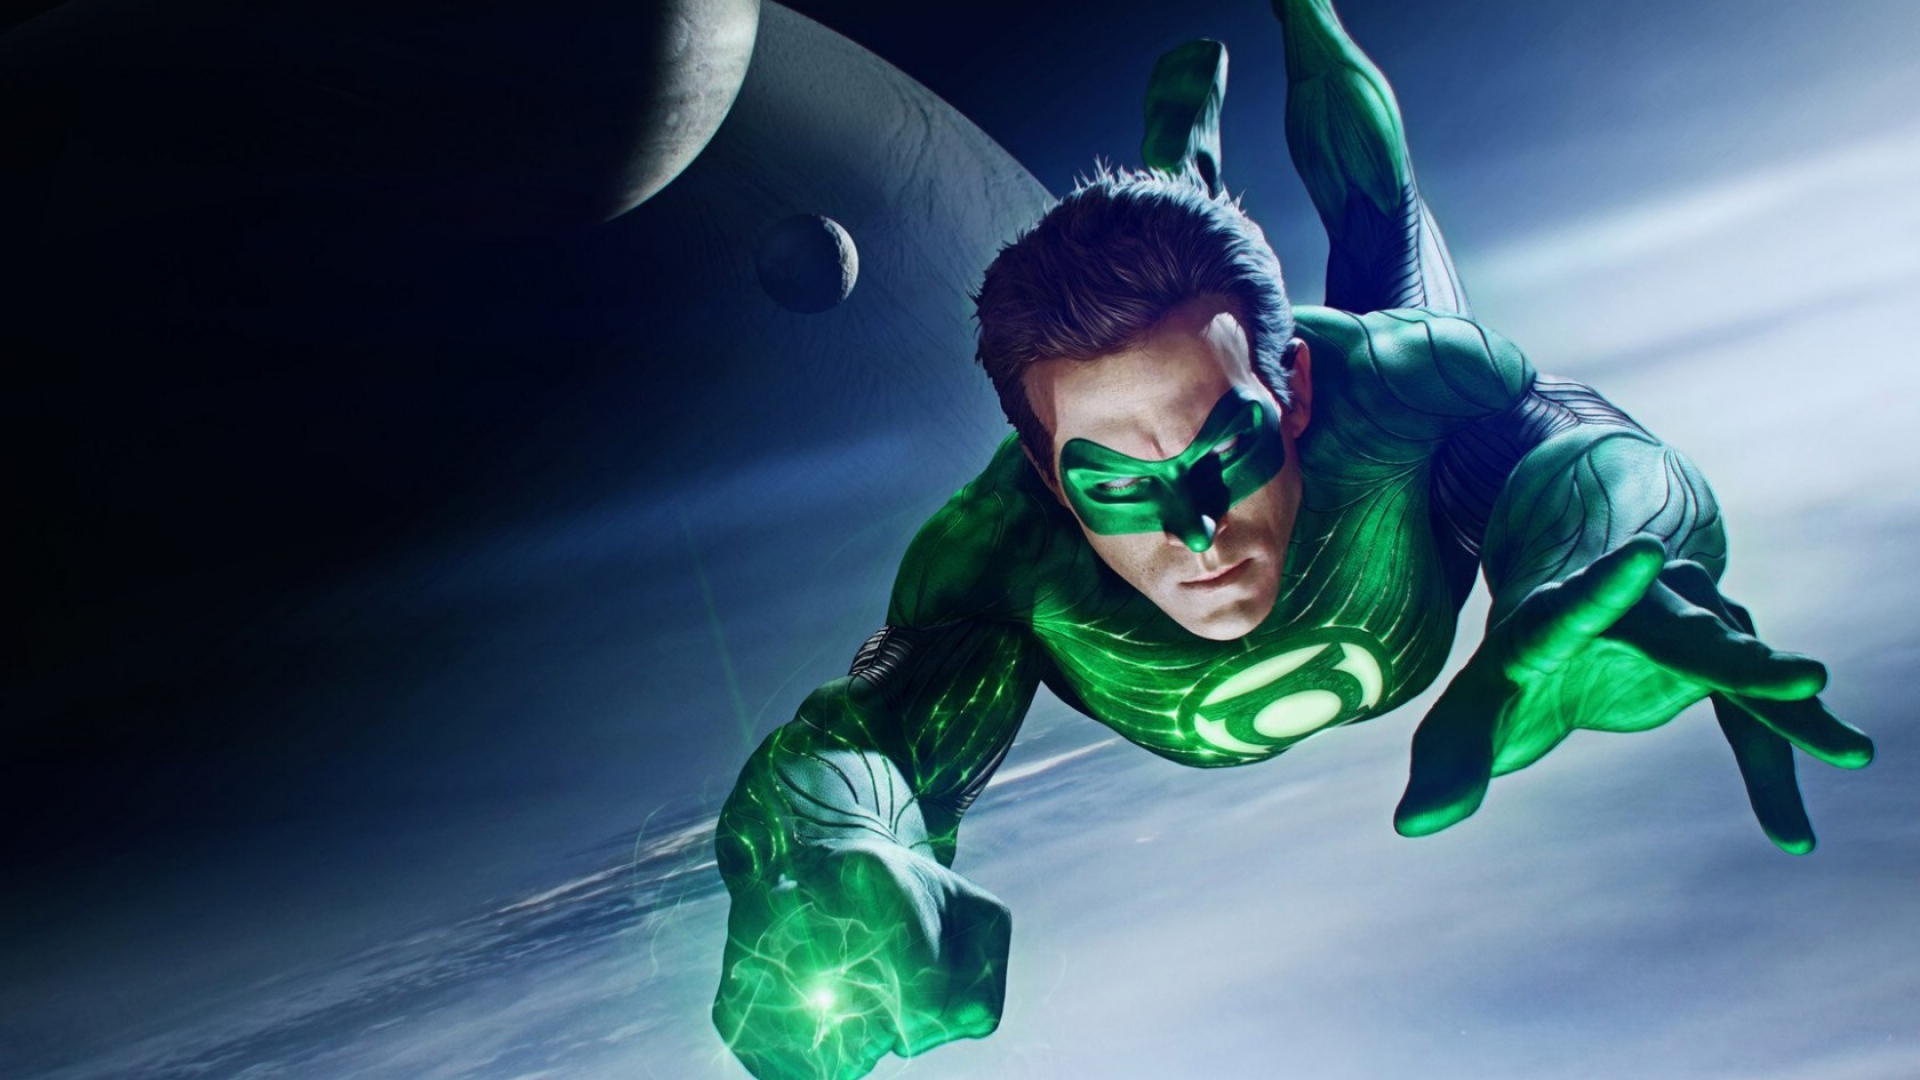 green lantern wallpapers images photos pictures backgrounds